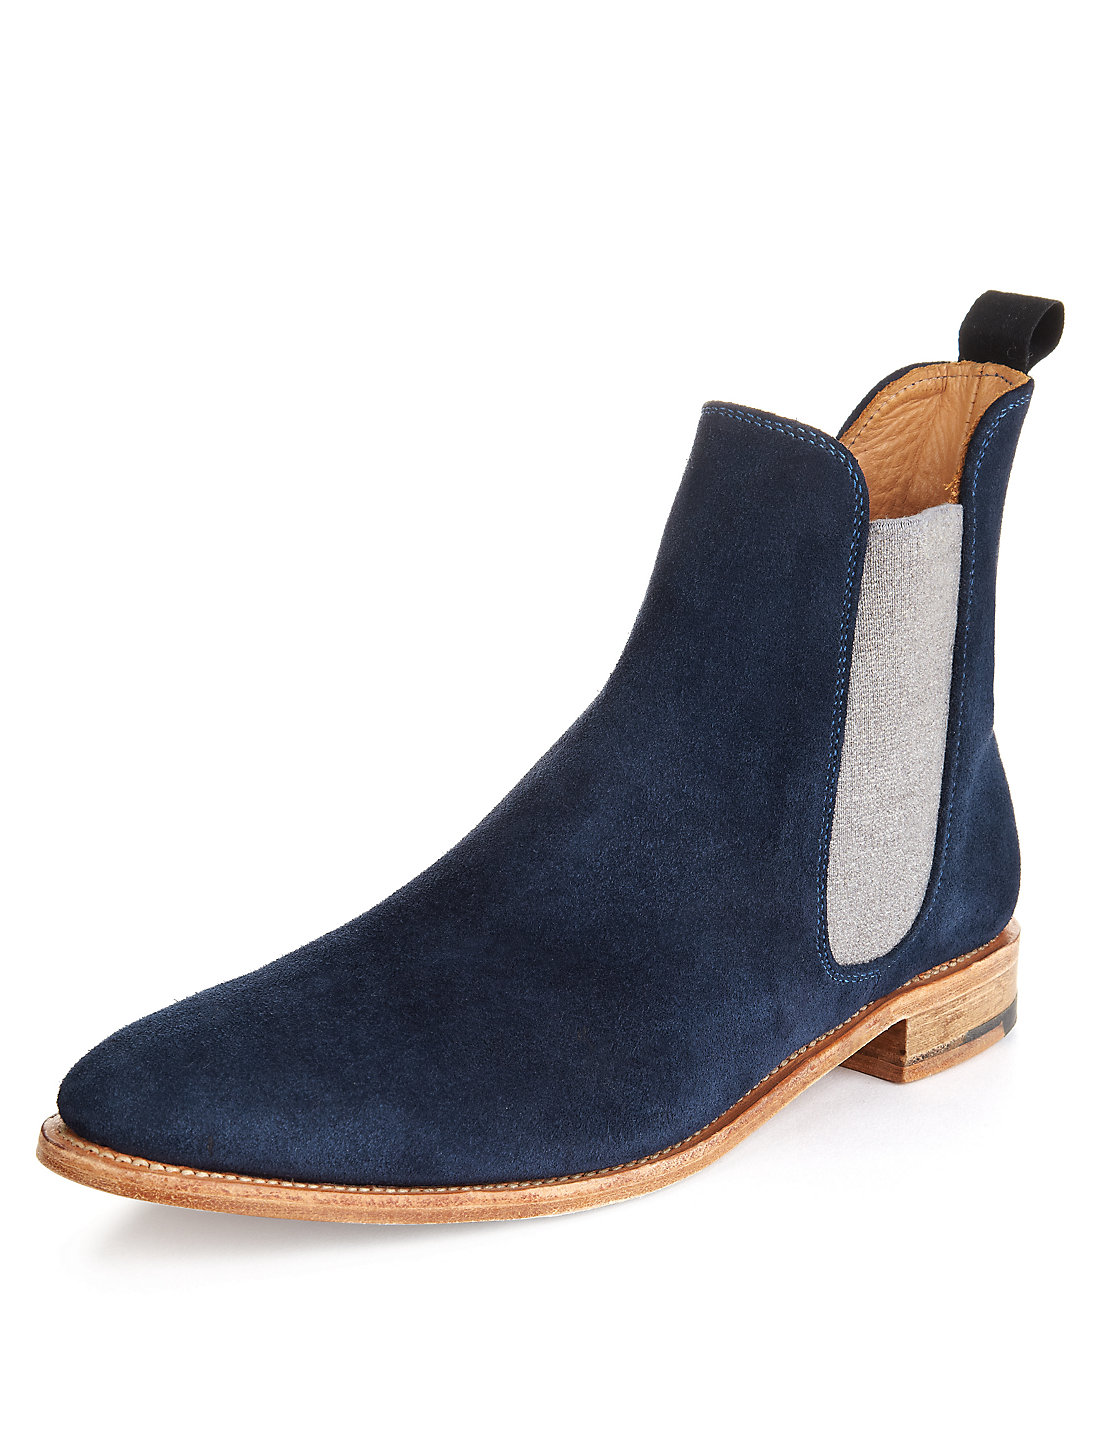 Handmade Mens Chelsea Boots Men Fashion Blue Ankle-high Suede